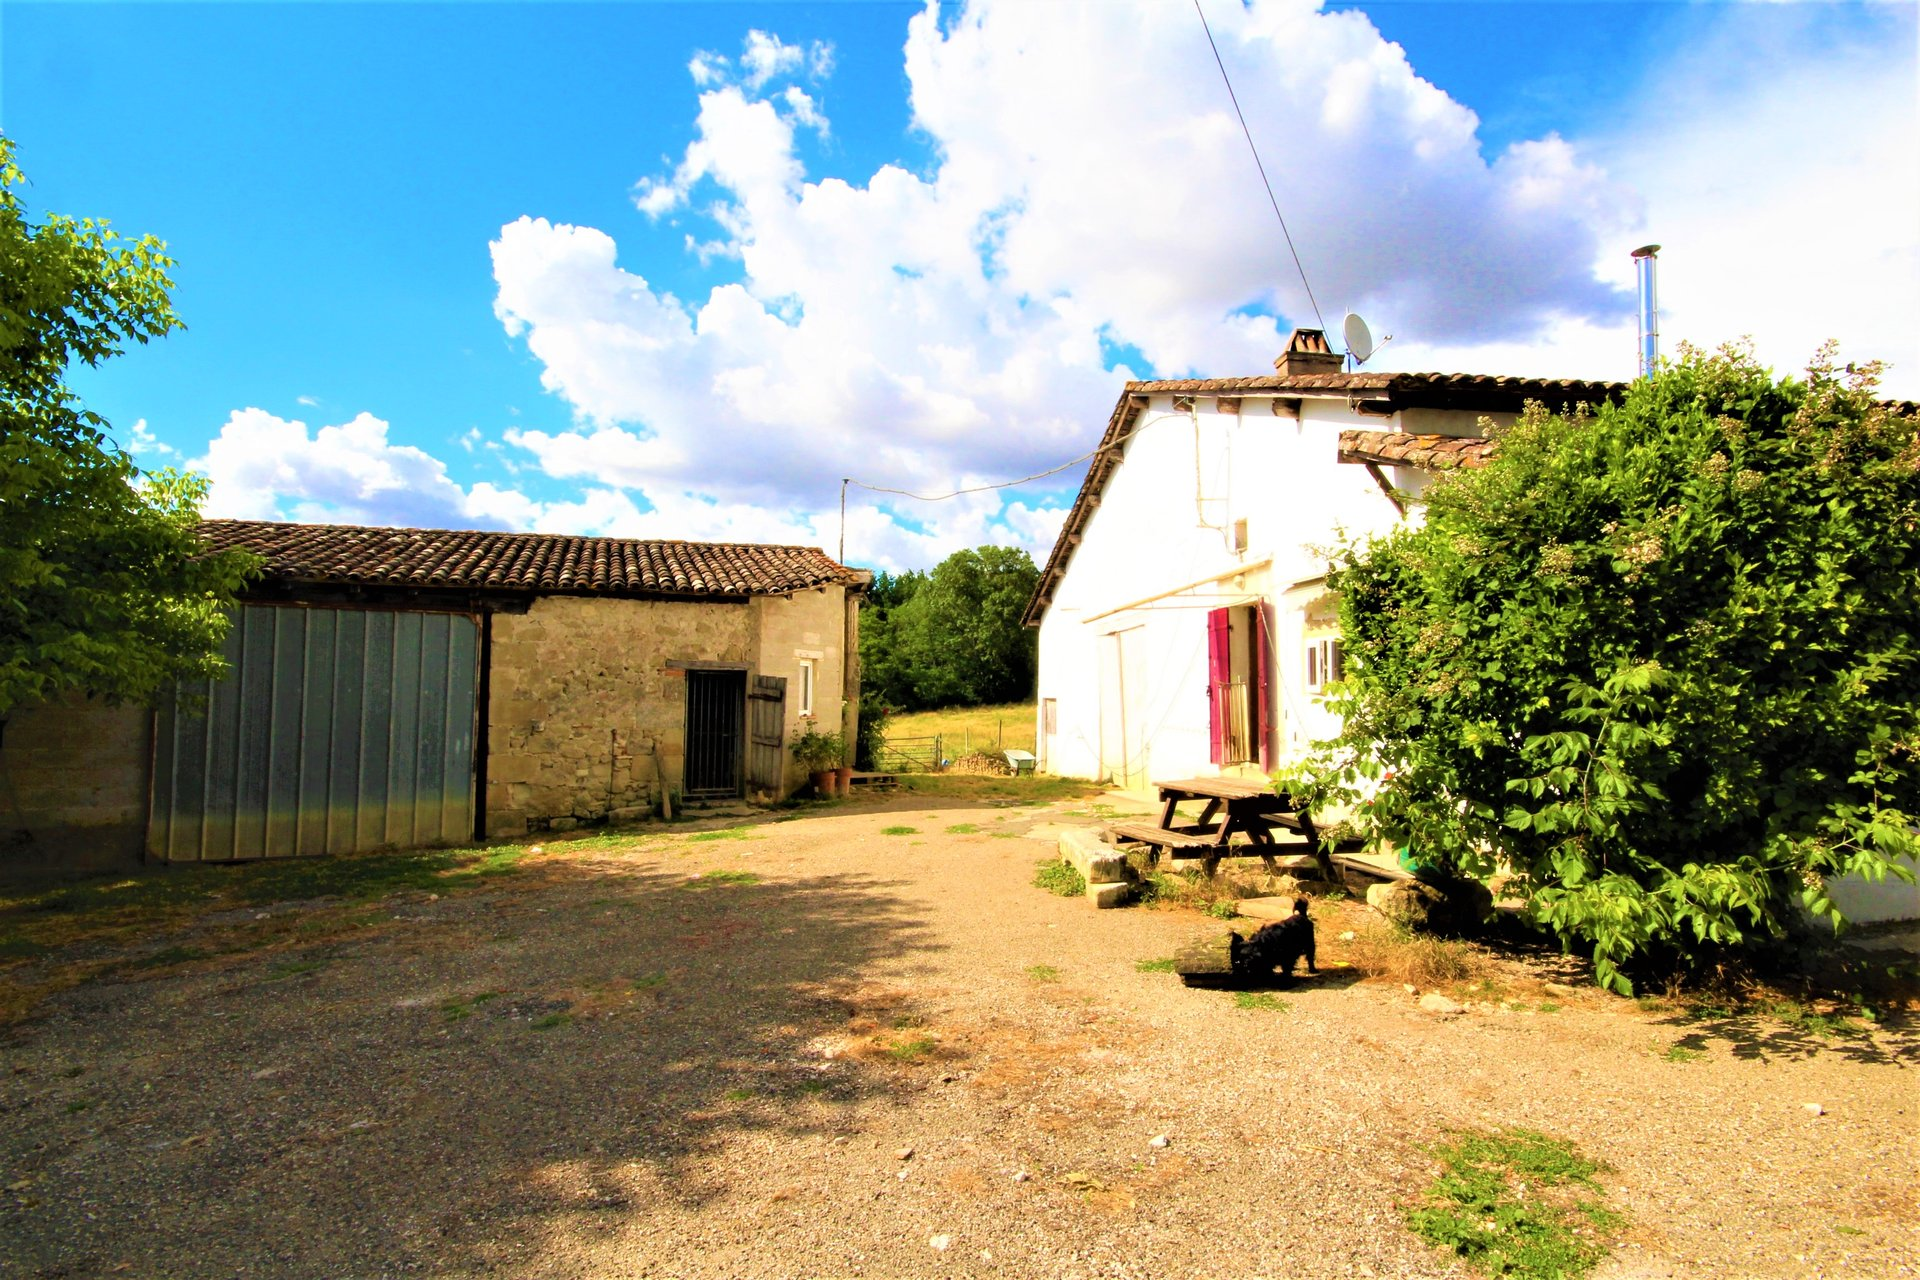 2 Bed farmhouse with several outbuildings ripe for renovation and 6 hectares of land